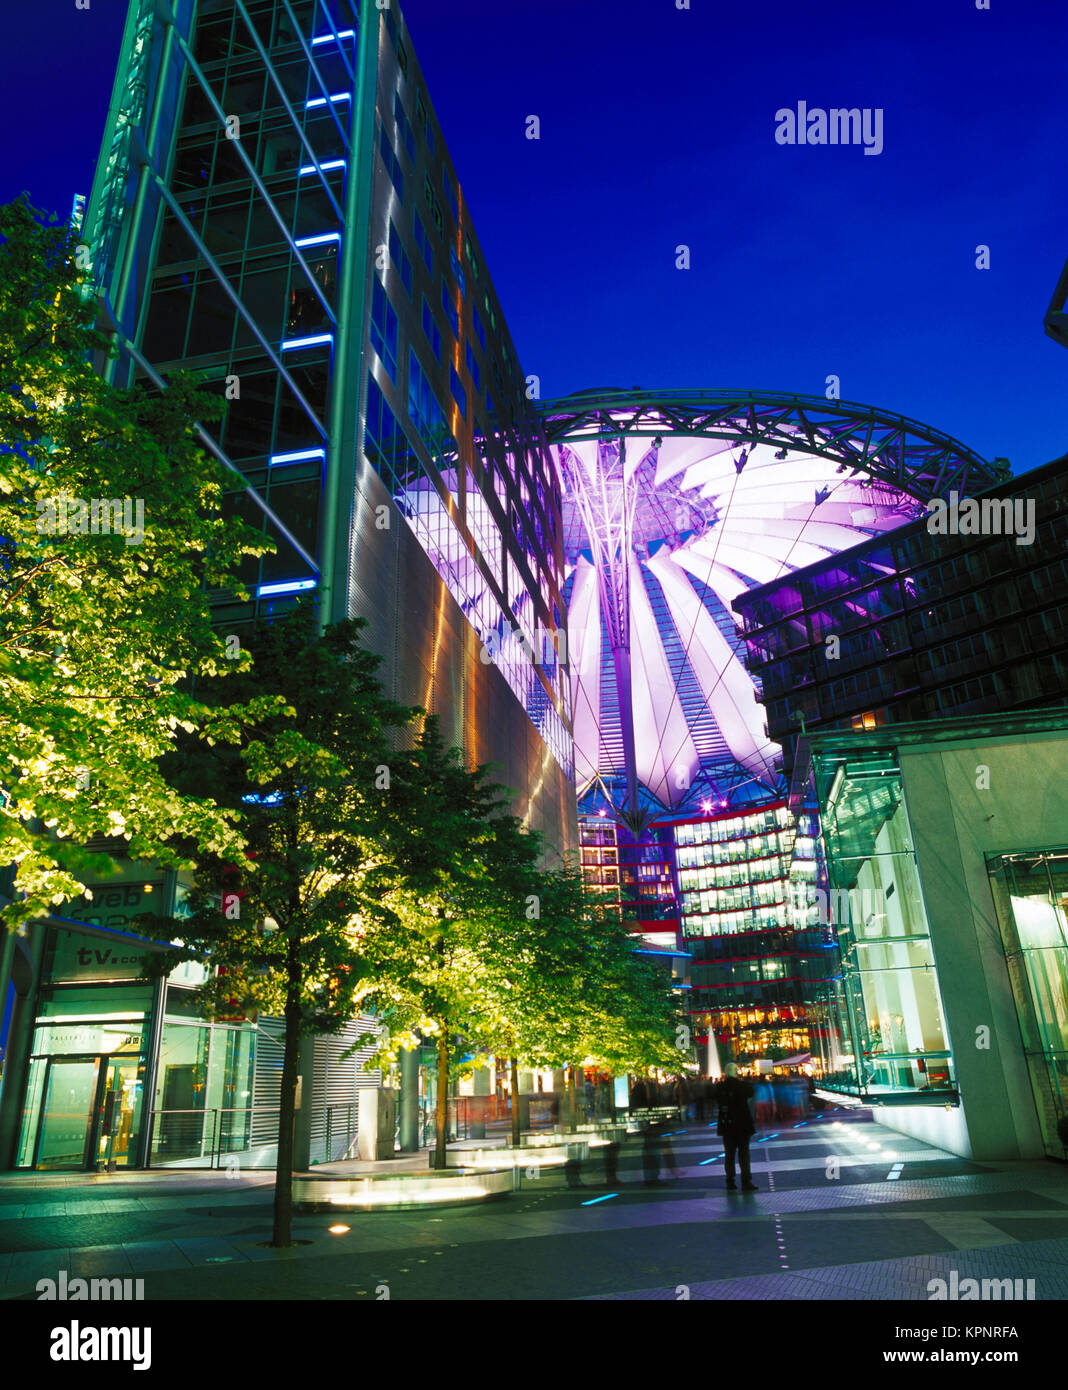 La Potsdamer Platz, Berlin, Allemagne Photo Stock